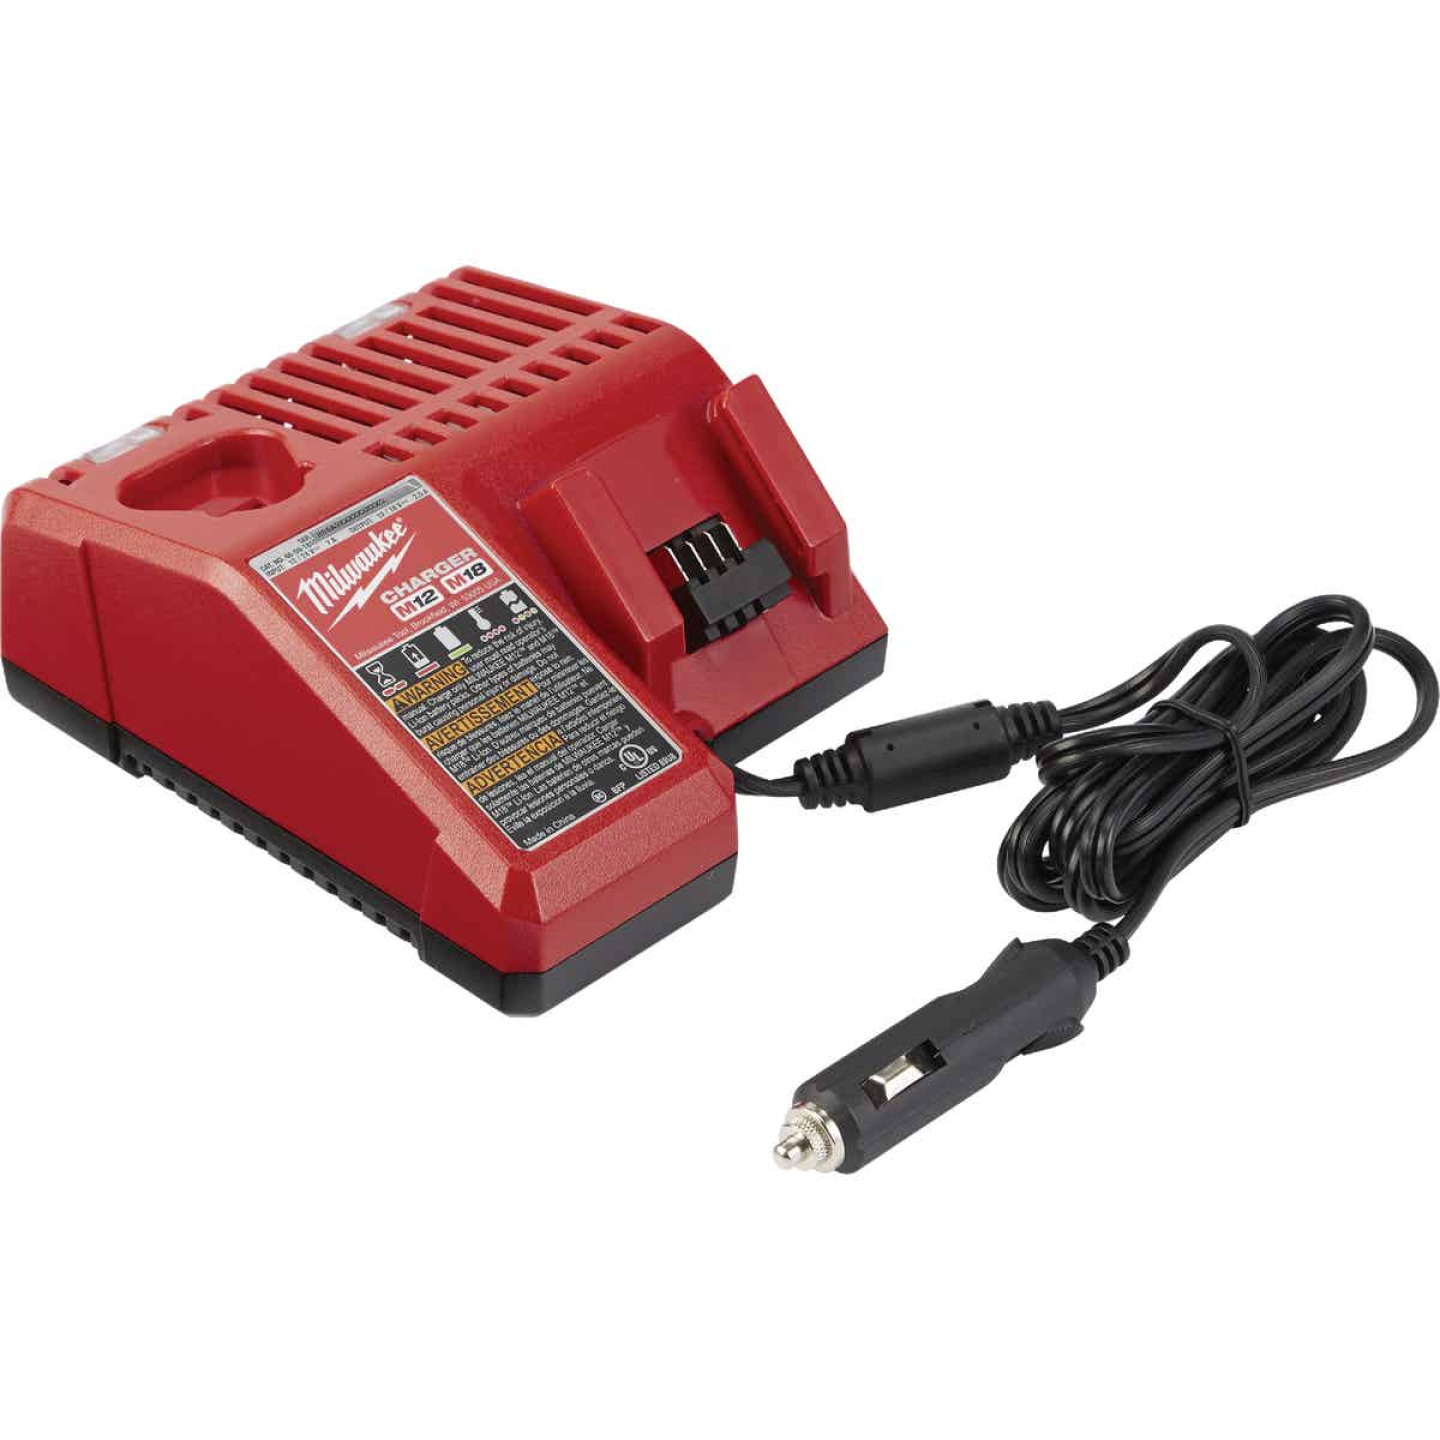 Milwaukee M18/M12 18 Volt and 12 Volt Lithium-Ion DC Vehicle Battery Charger Image 1